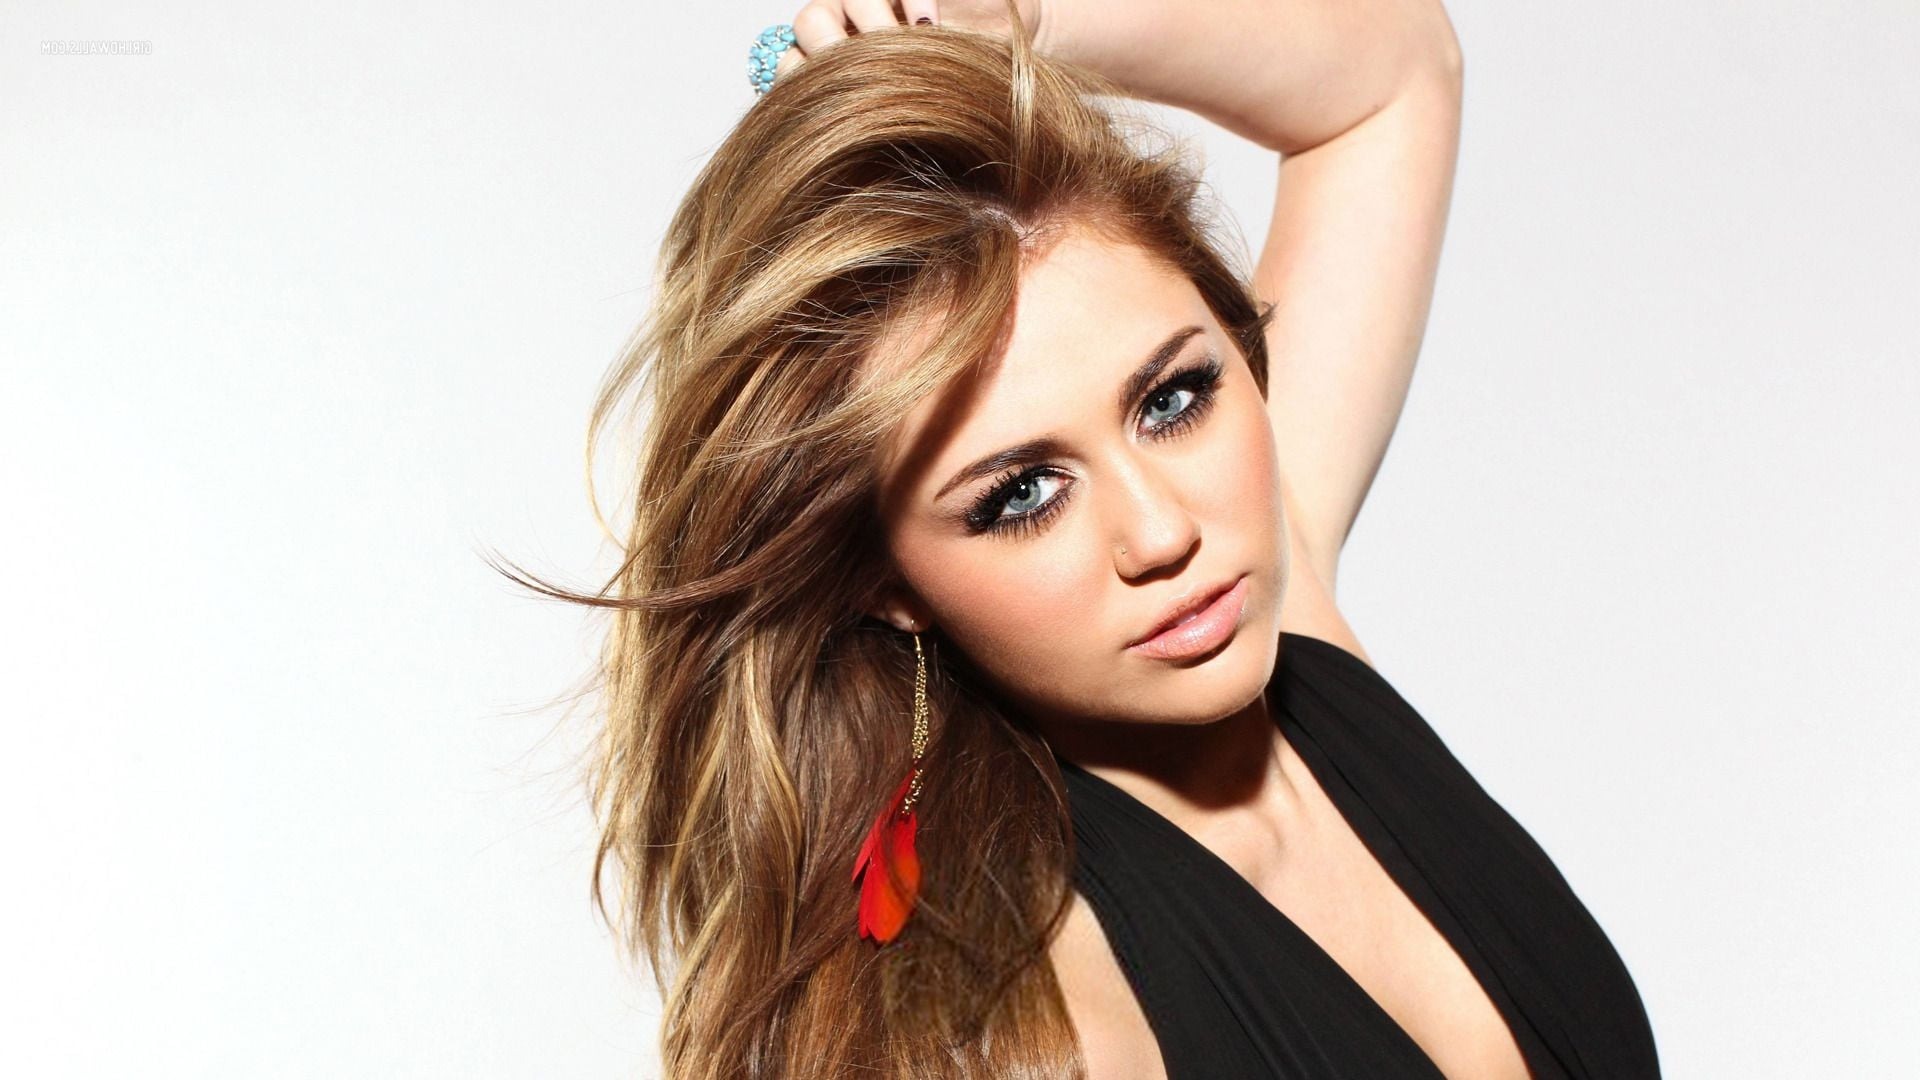 39+ miley cyrus wallpapers hd download